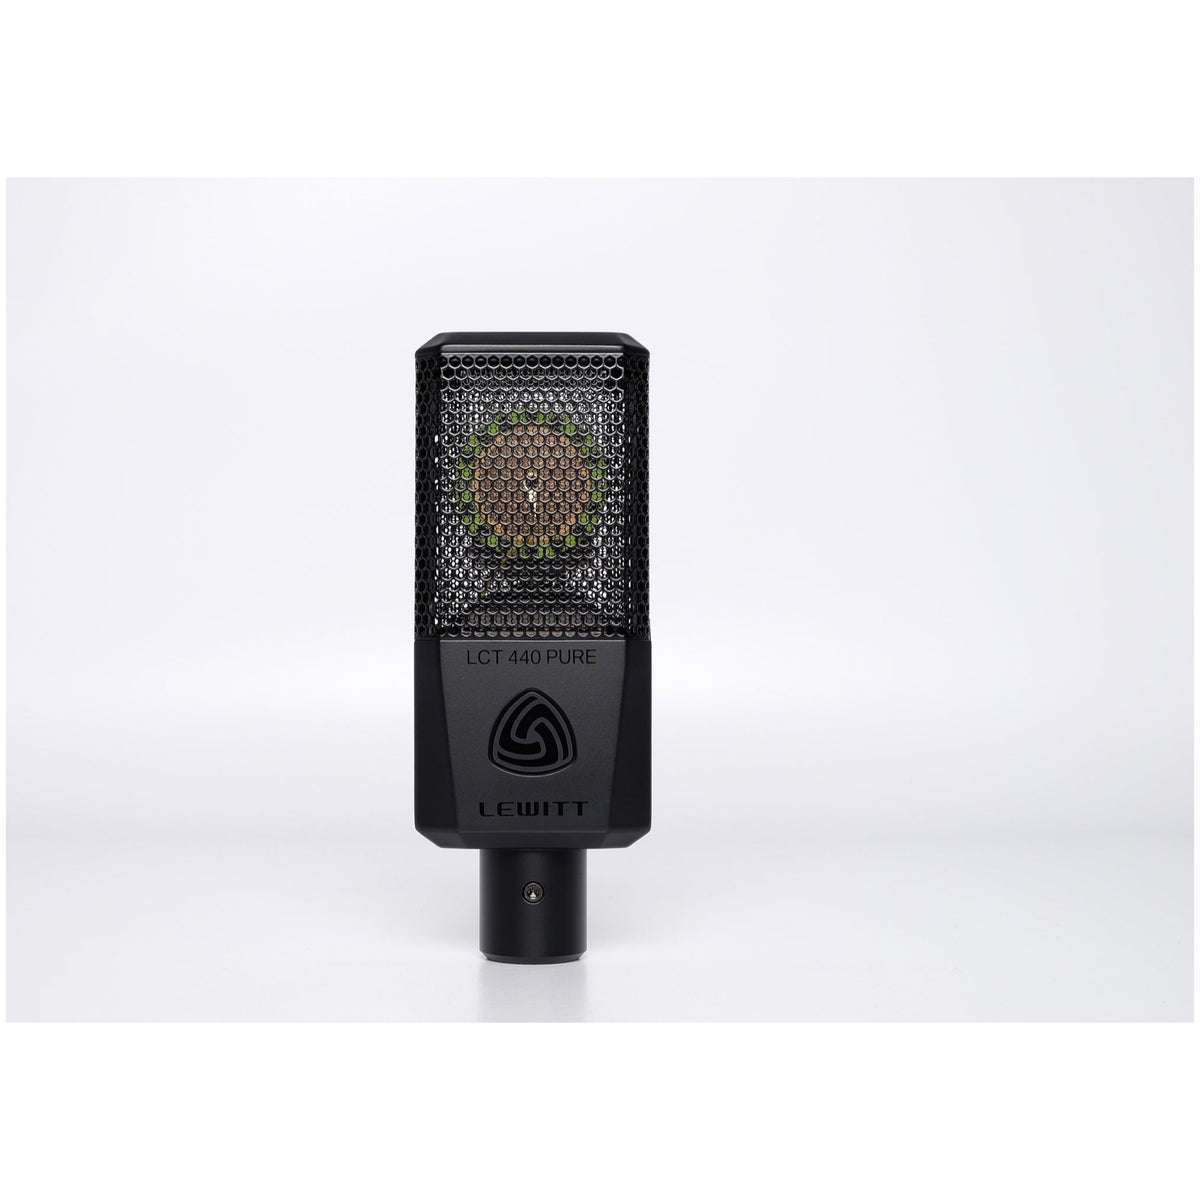 Lewitt LCT 440 PURE Large-Diaphragm Condenser Microphone